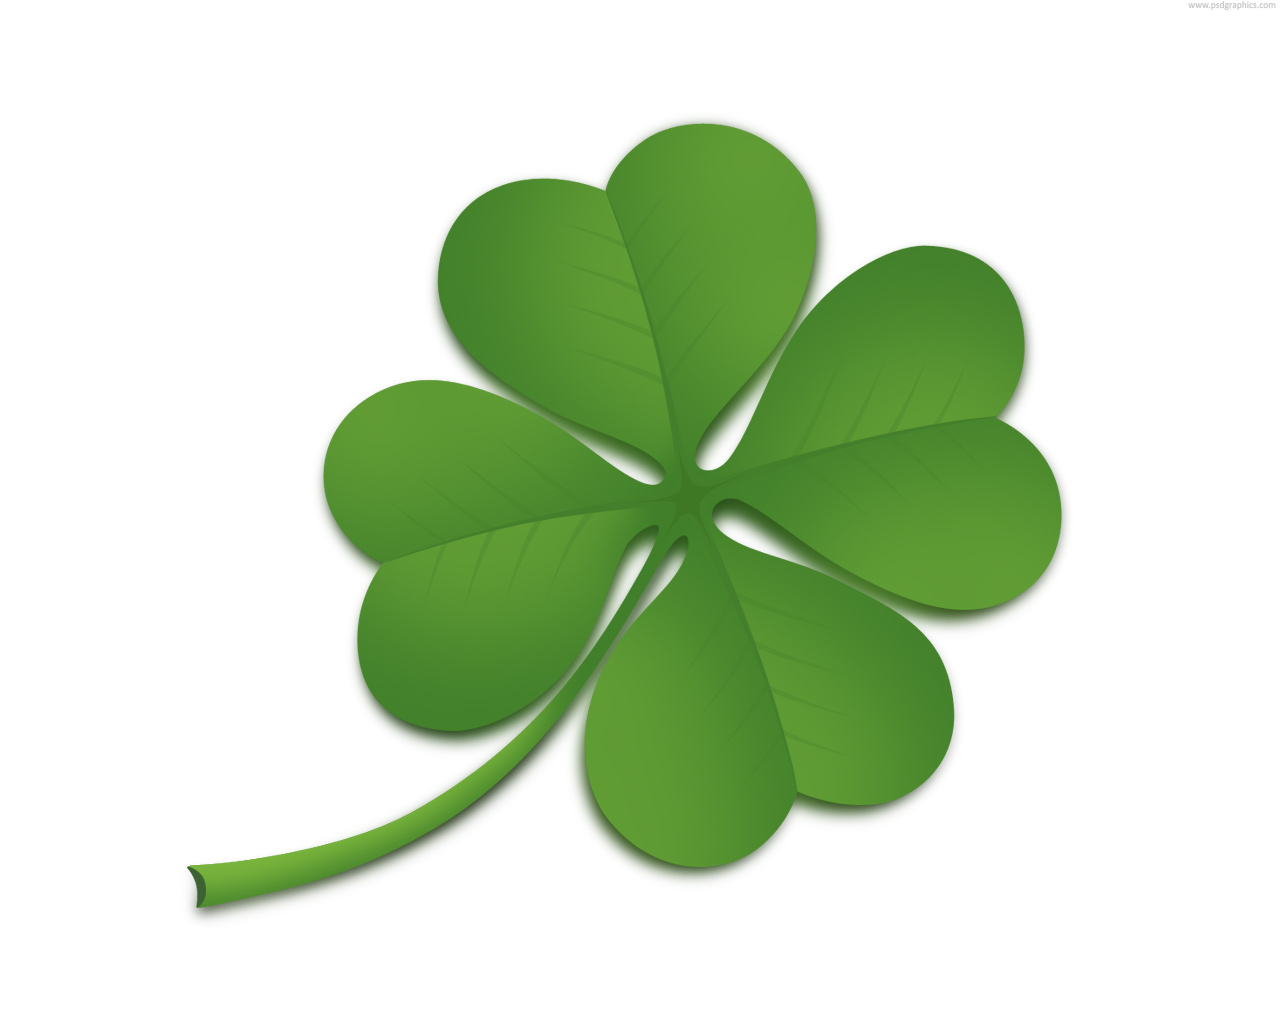 Leaf Clover Png Given without comment but much